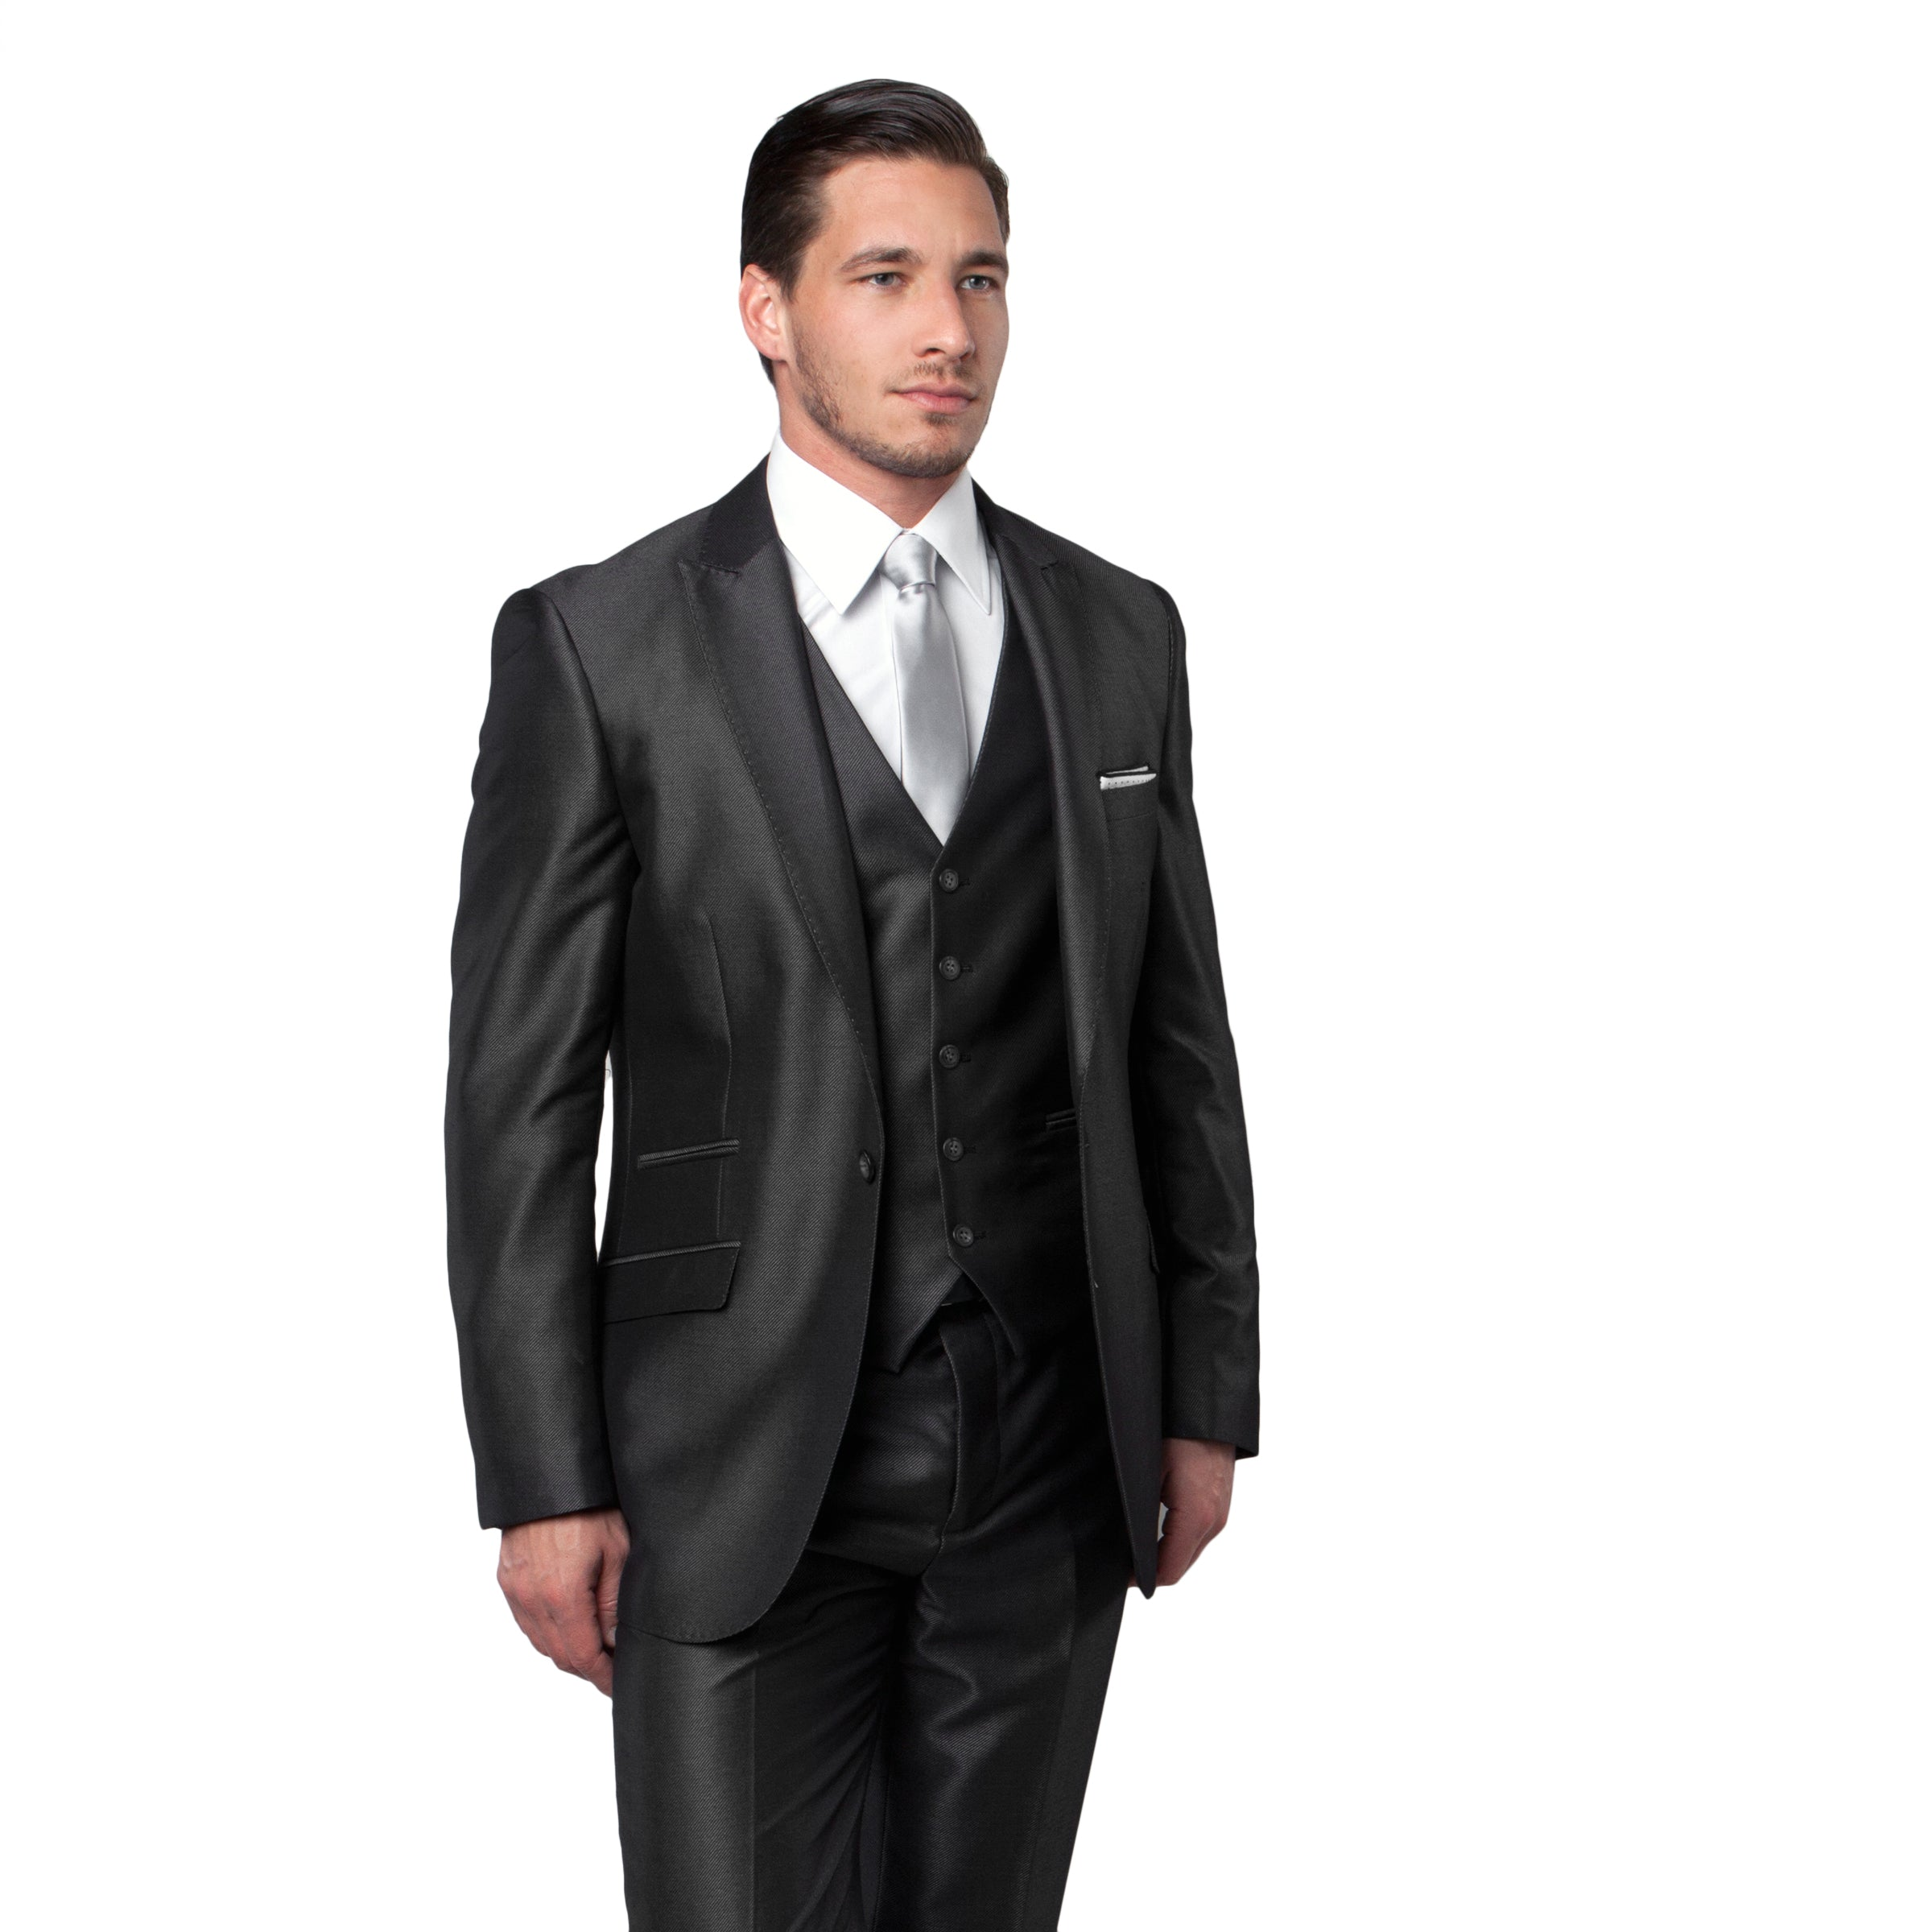 Grey Suit For Men Formal Suits For All Ocassions M166S-02